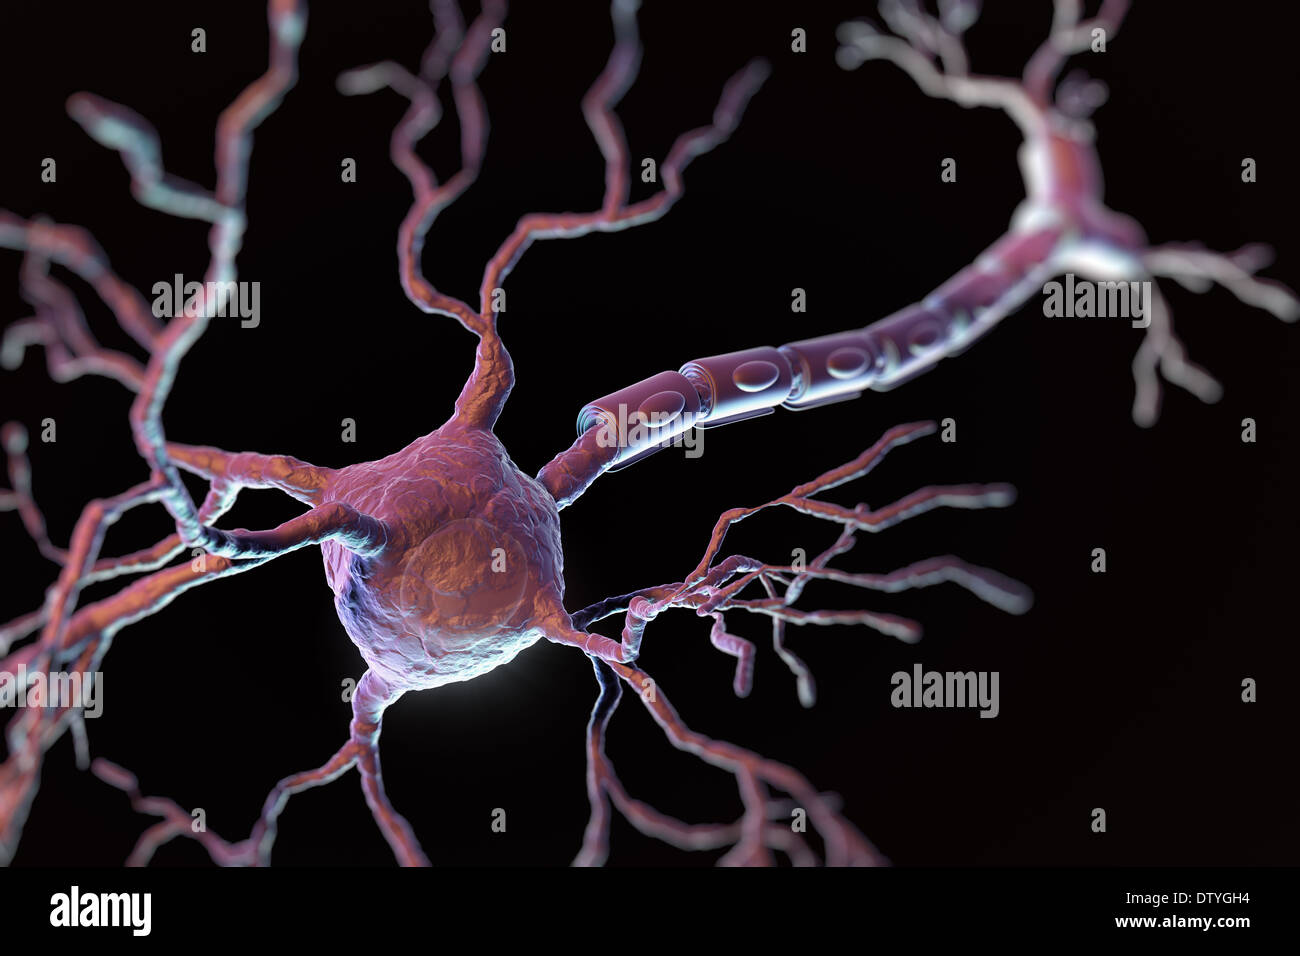 Neurone multipolaire Photo Stock